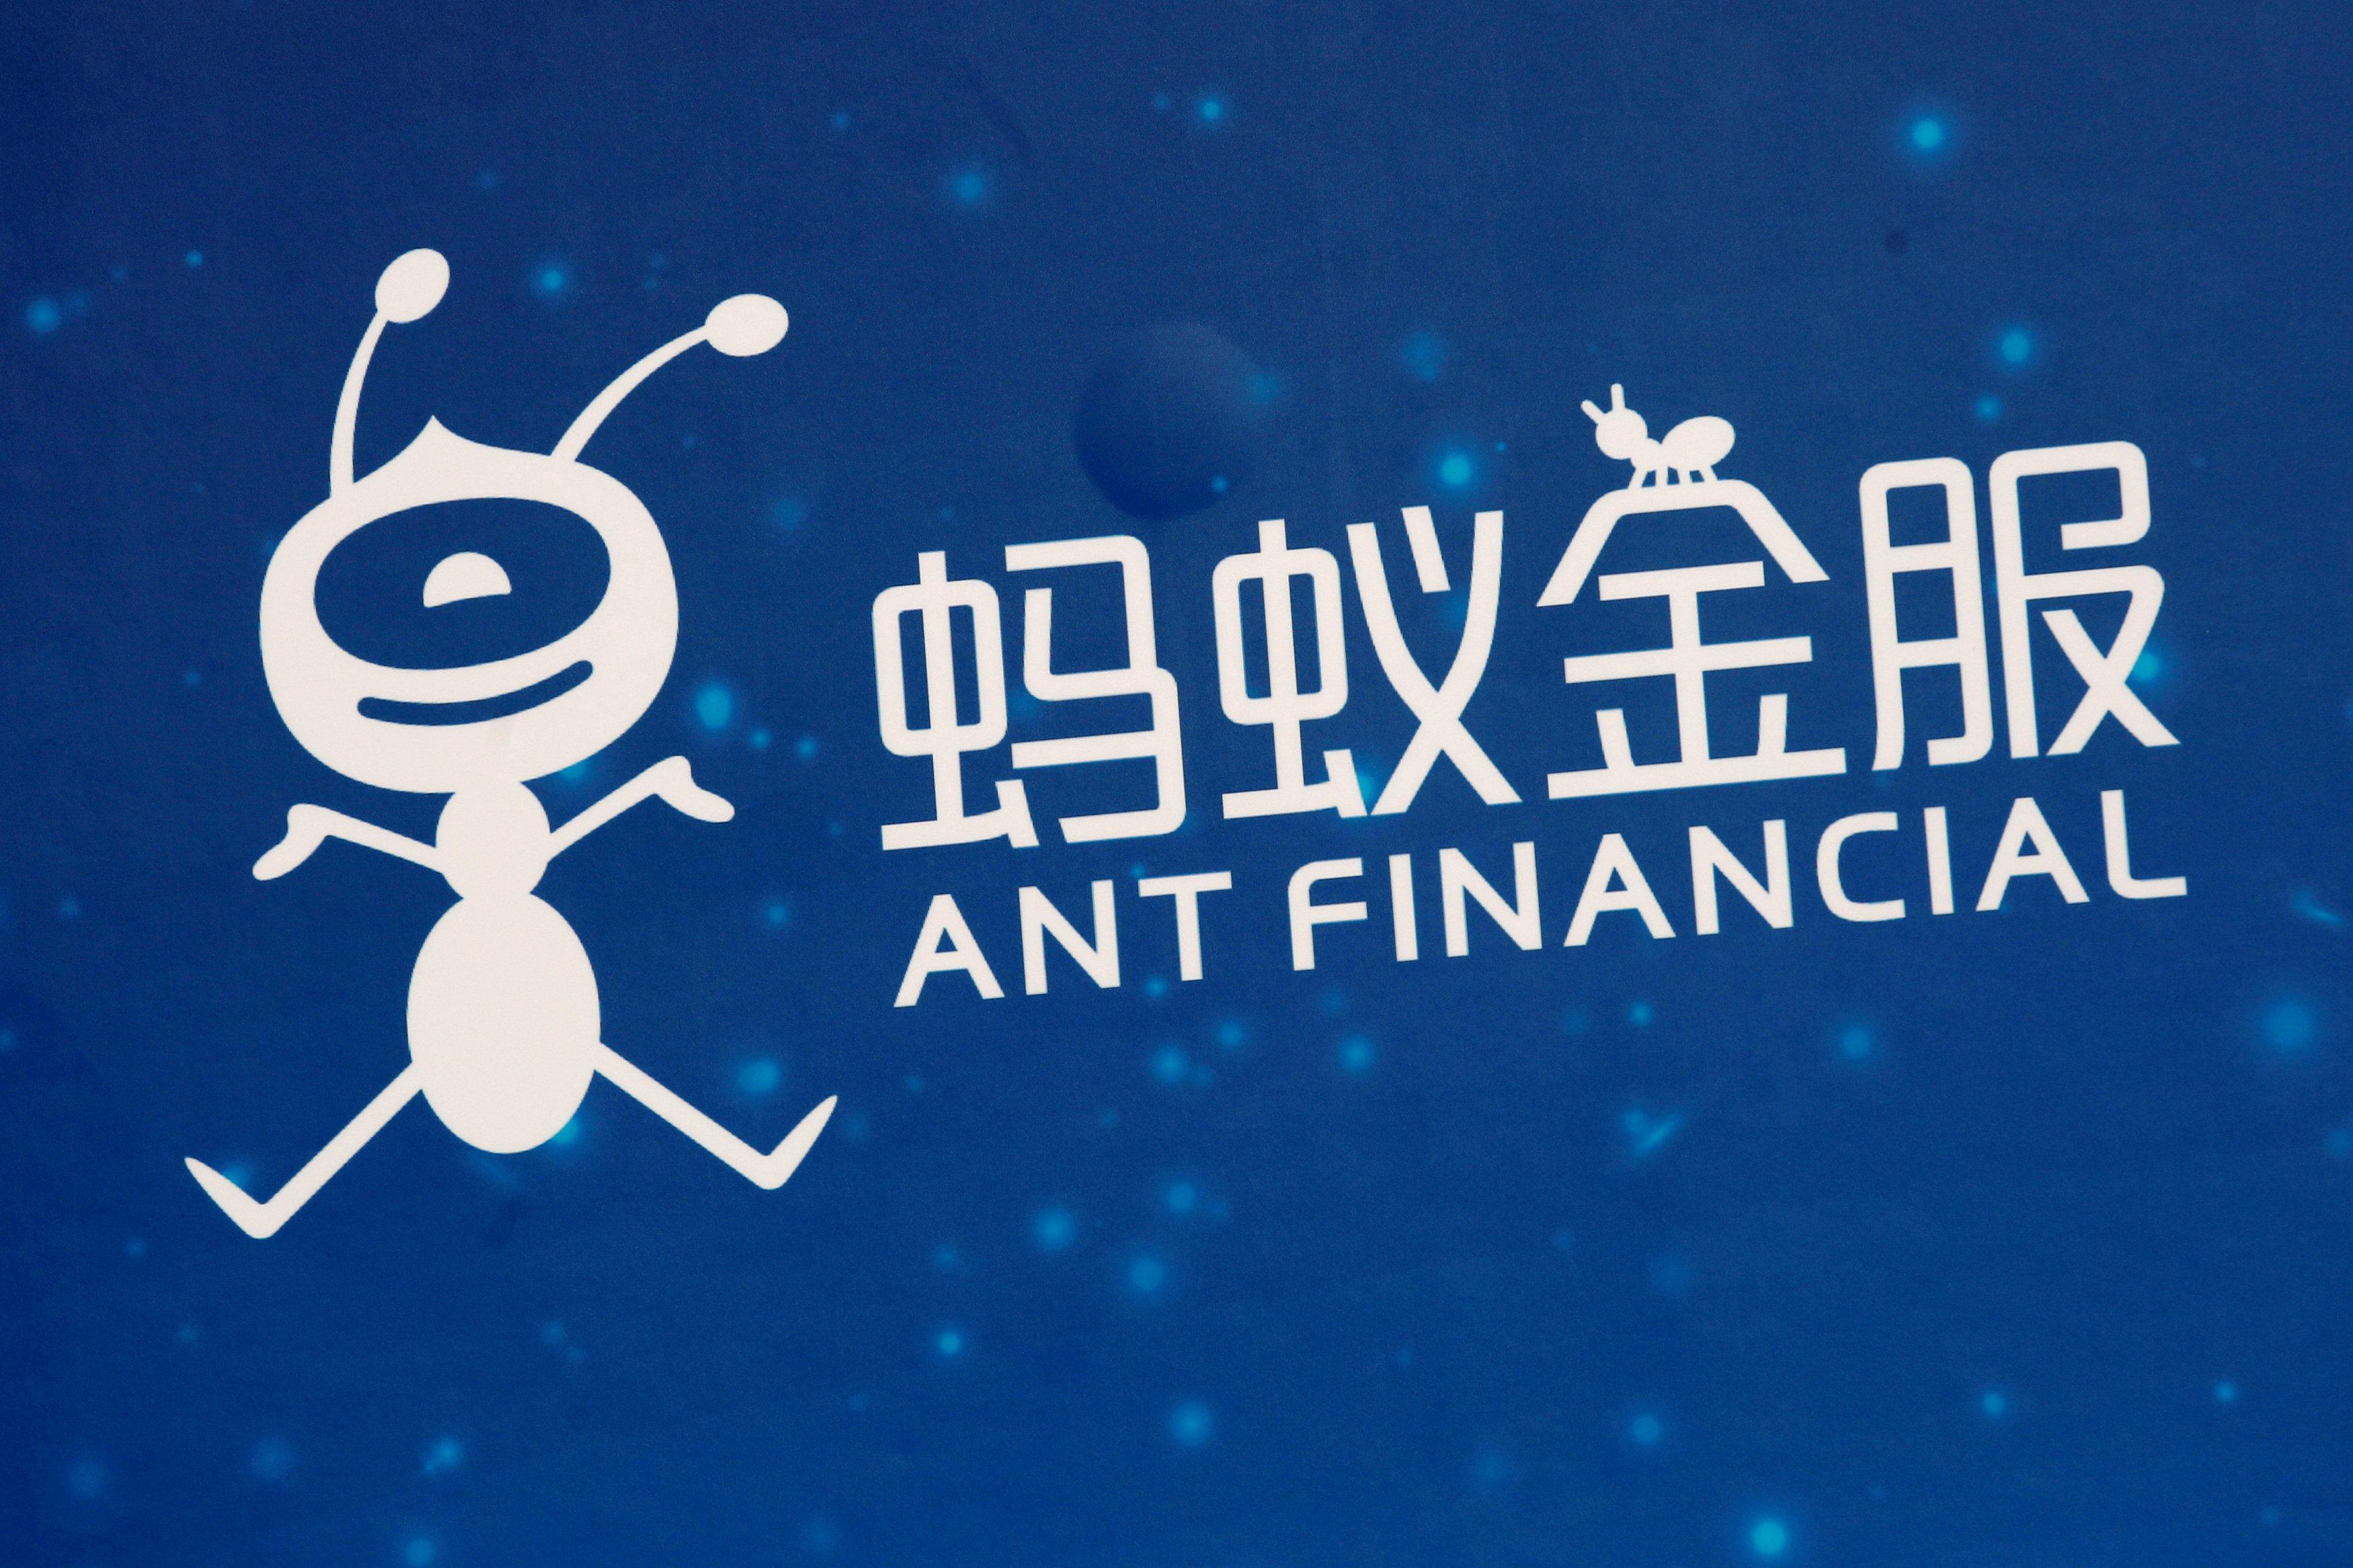 A logo of Ant Financial is displayed at the Ant Financial event in Hong Kong, China November 1, 2016. Bobby Yip